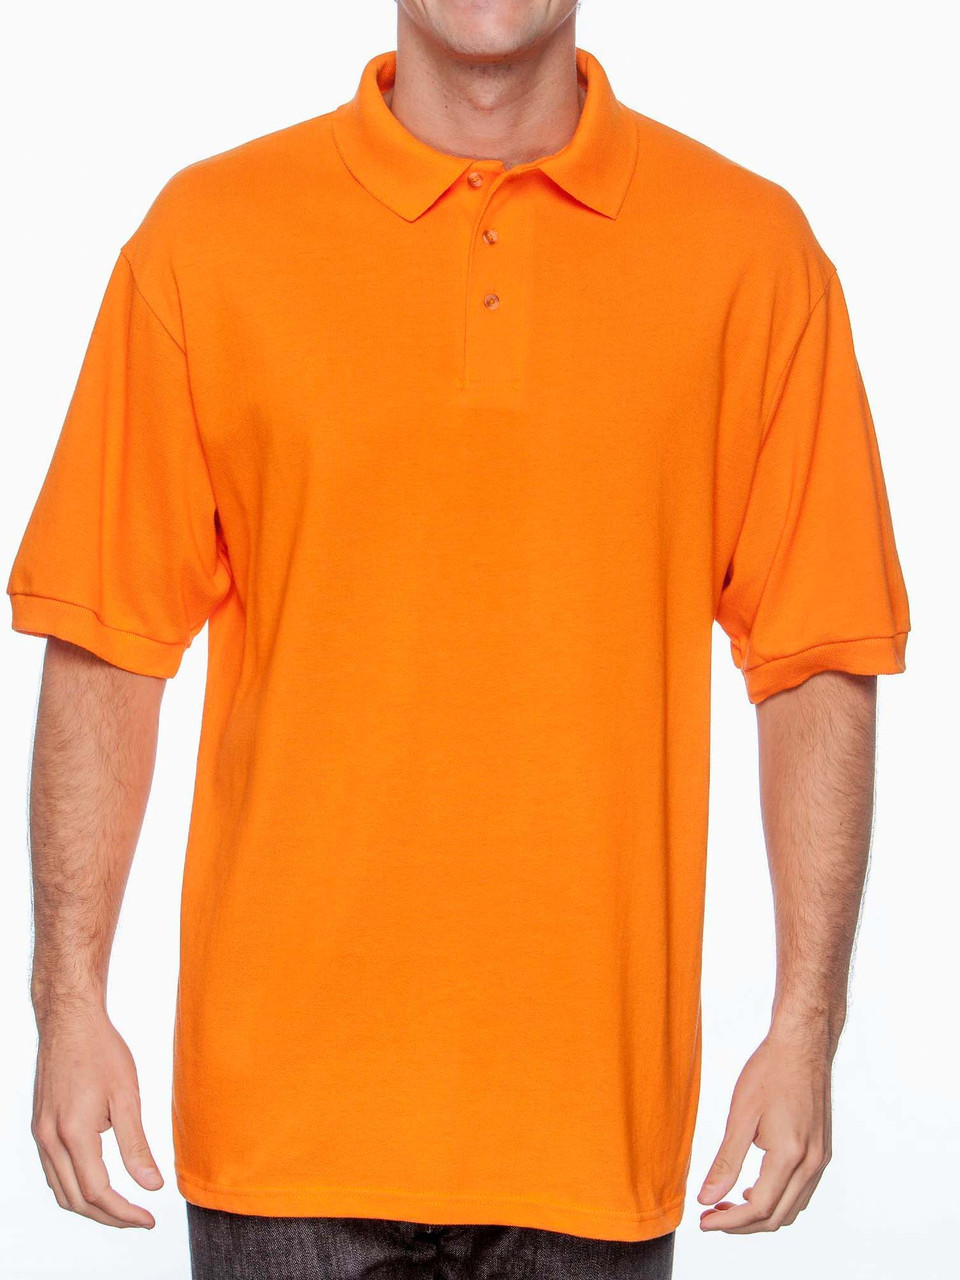 272de60b26bd7 Поло Hanes Comfort Soft Pique Athletic Orange: продажа, цена в ...